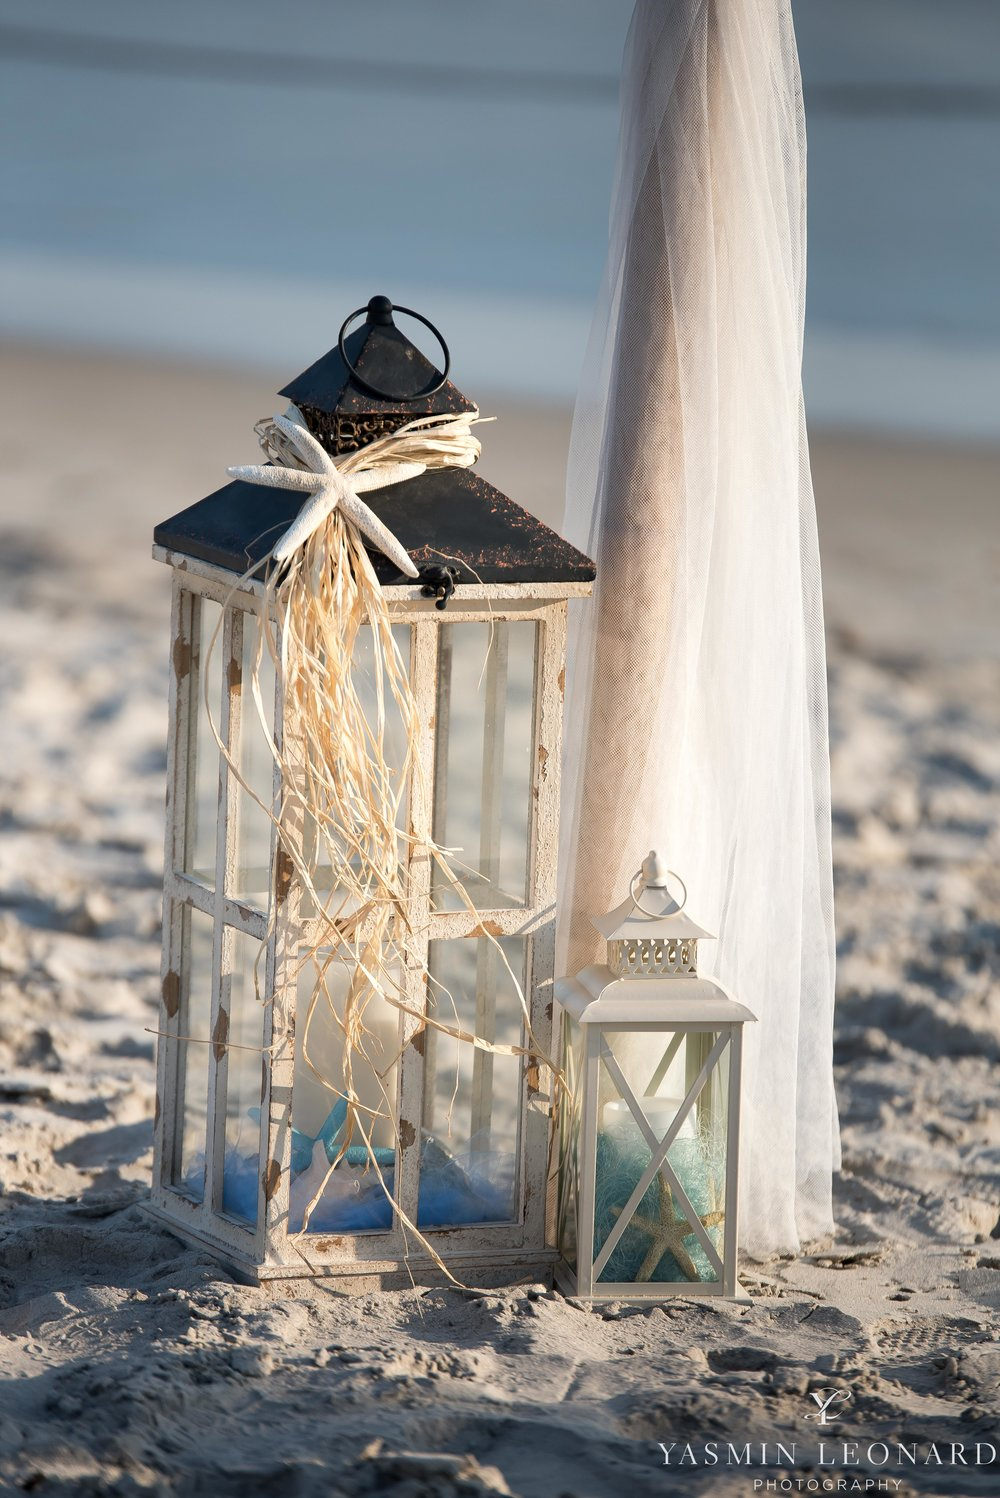 Oak Island _ Oak Island Wedding _ Beach Wedding_NC Beach Wedding_NC Destination Photographer_NC Wedding Photographer_Yasmin Leonard Photography_Beach Themed Wedding-13.jpg